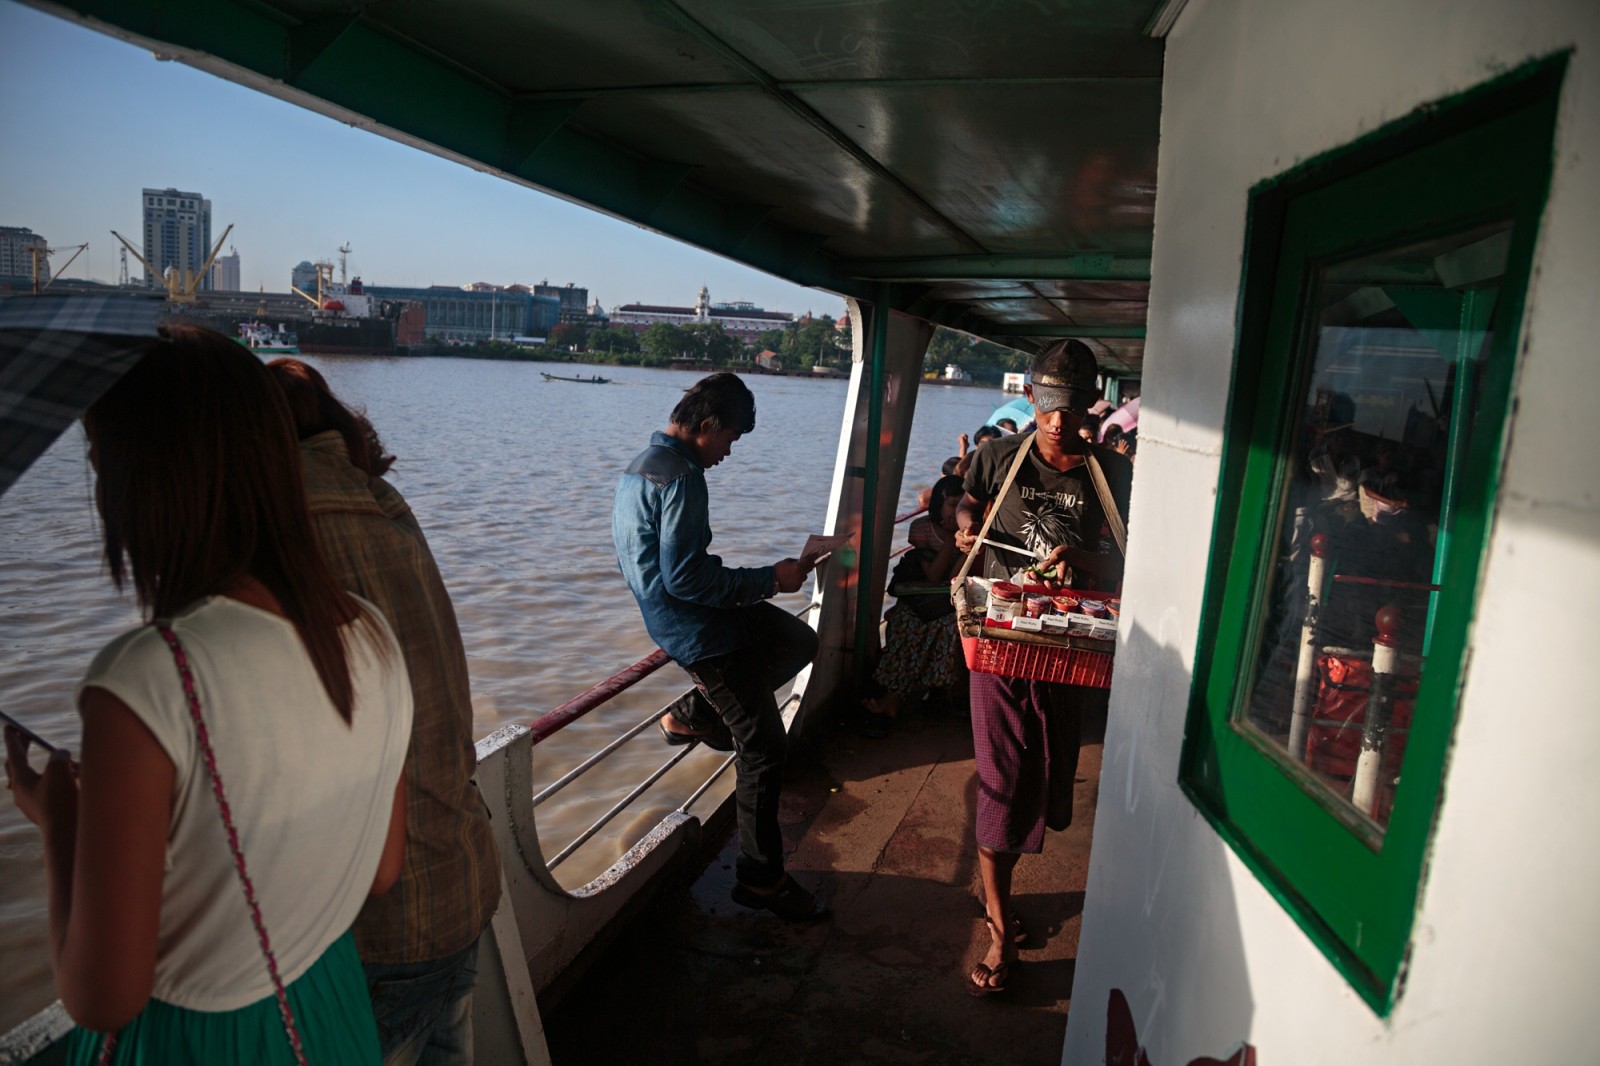 Passengers cross the Yangon river to Dala. A bridge is in the works to connect Yangon and Dala which will transfrom the quiet rural area into a bustling waterfront. Poor residents along the waters edge in Dala are already being forced to sell their homes.